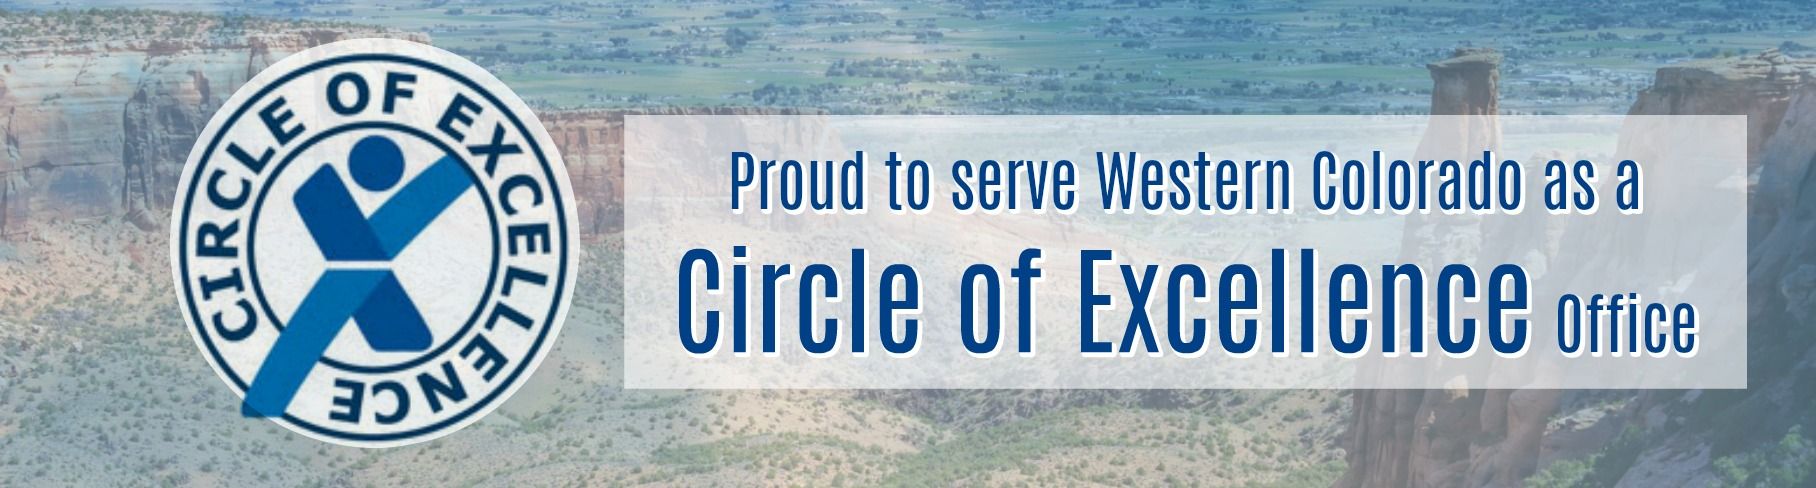 Circle of Excellence HomePage